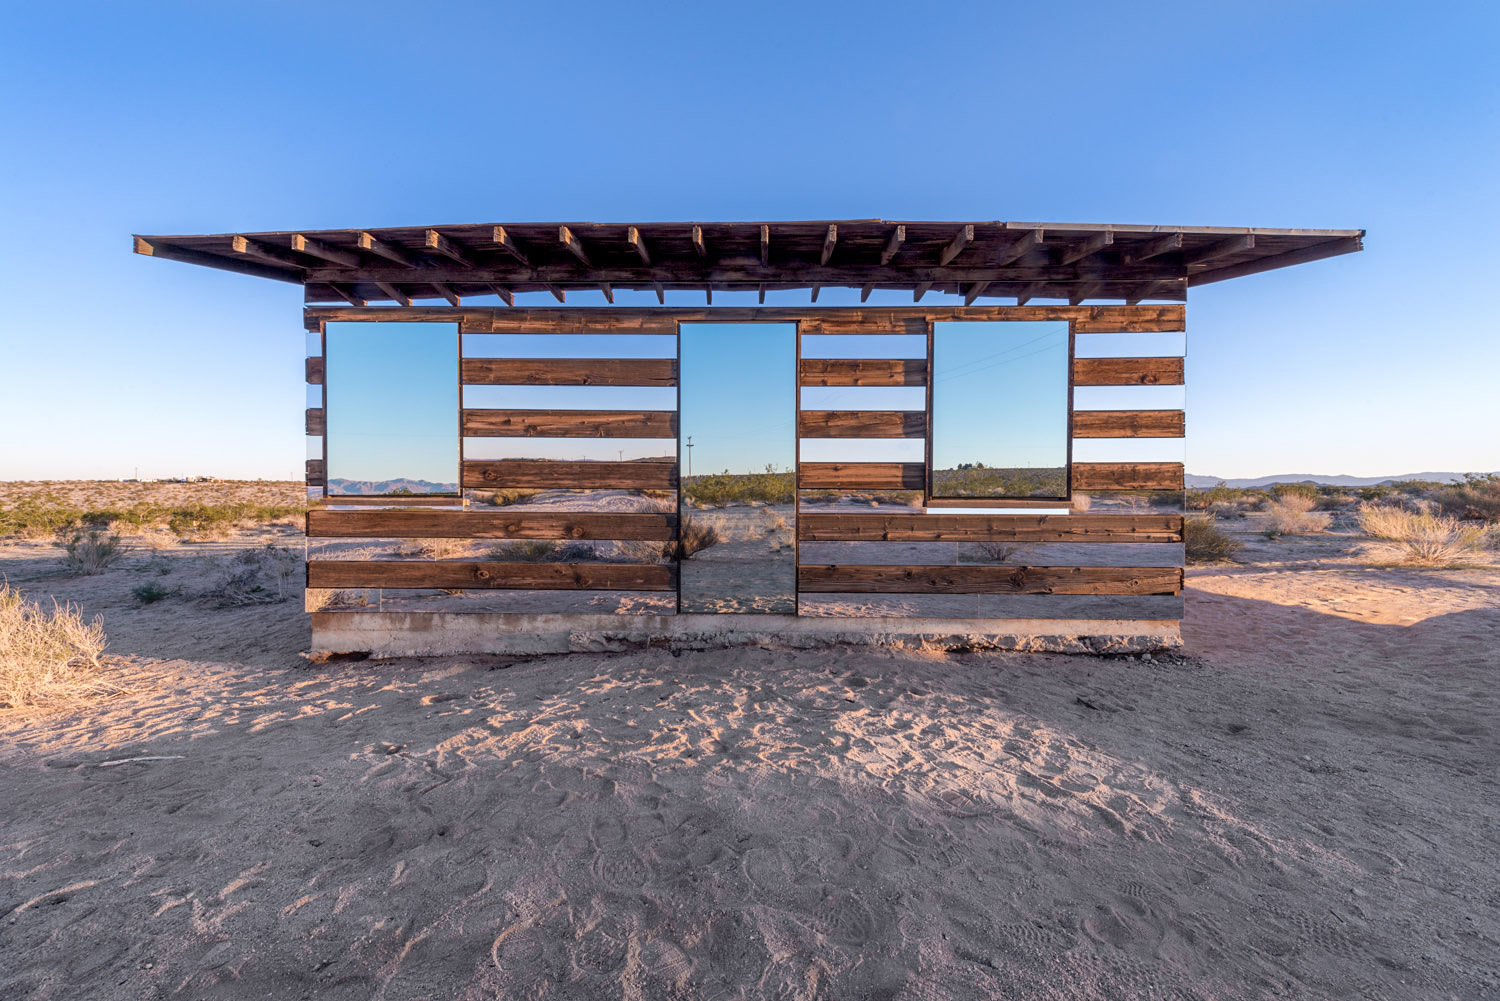 front view of lucid stead shack, mirrored, by phillip k smith